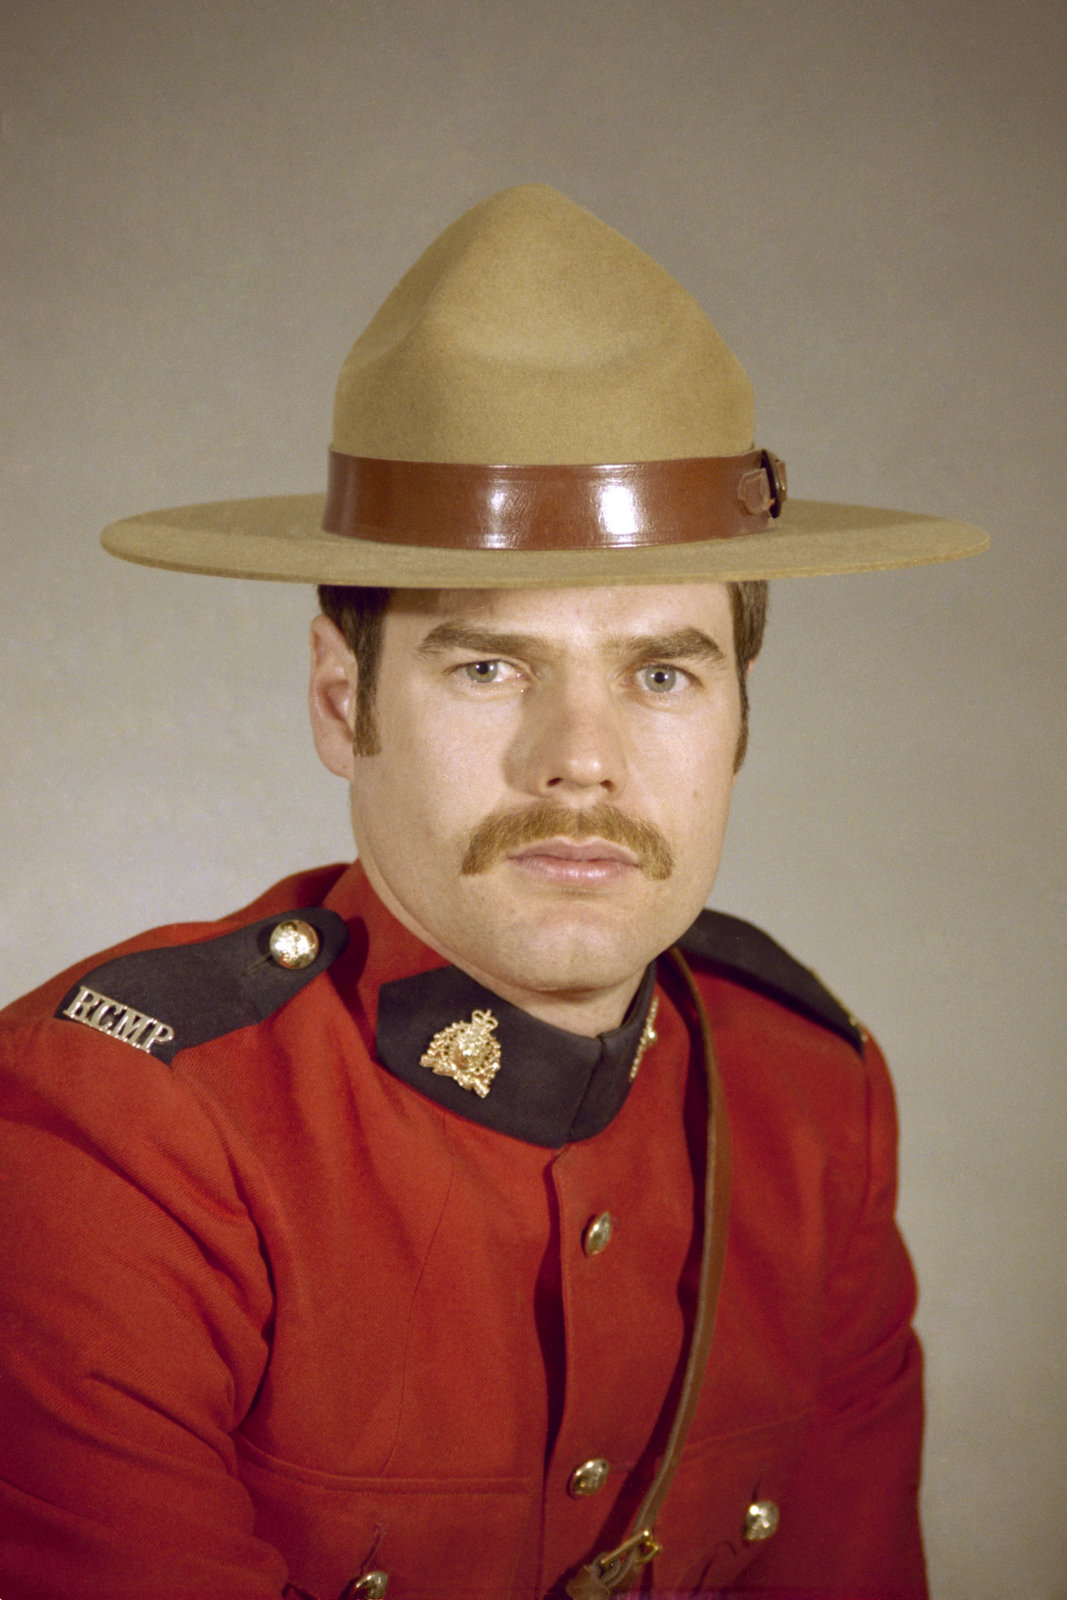 Constable Richard John Sedgwick – © Her Majesty the Queen in Right of Canada as represented by the Royal Canadian Mounted Police